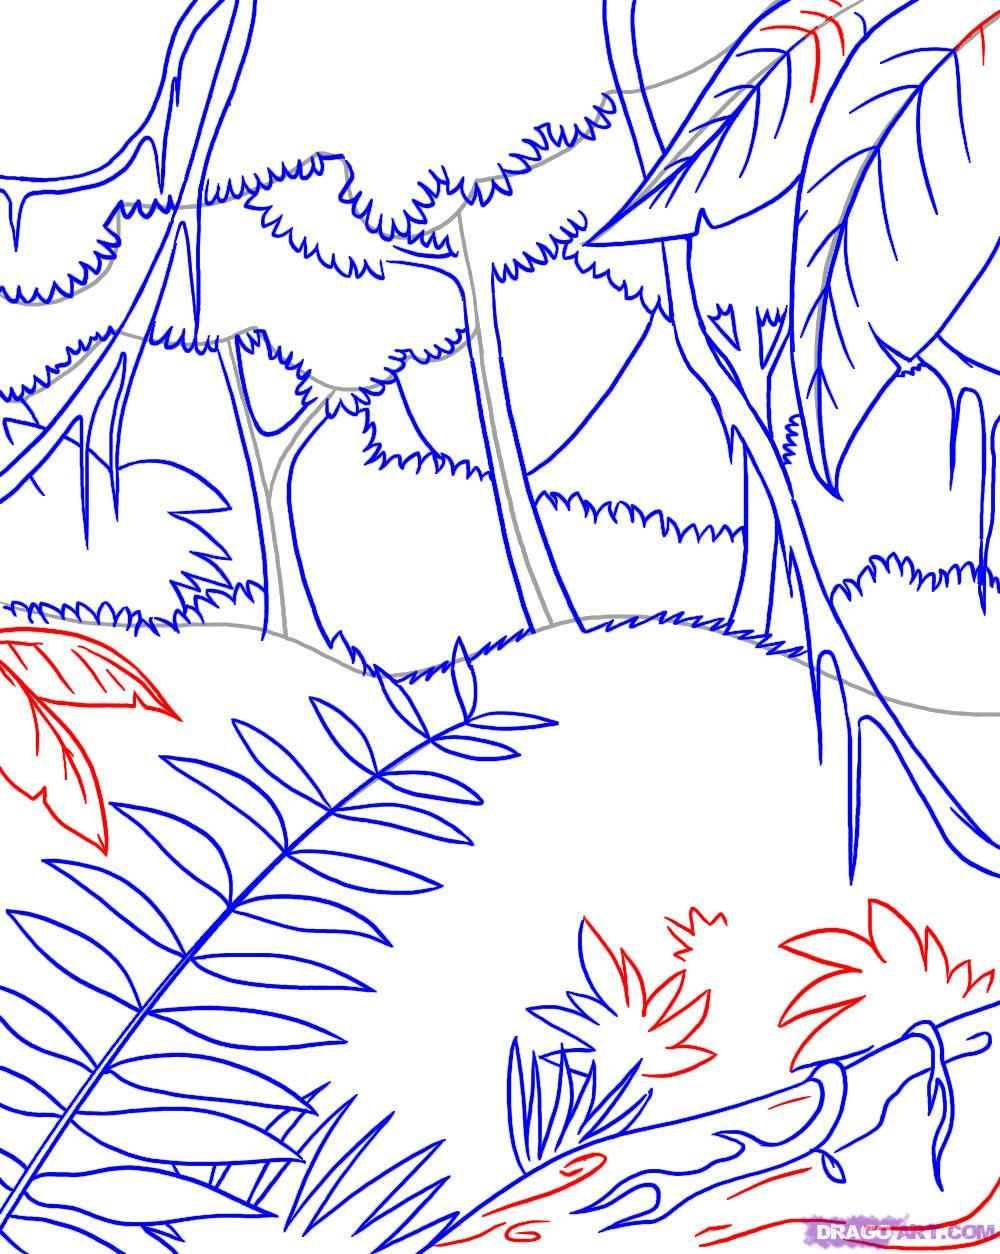 How To Draw A Rainforest Tree : rainforest, Rainforest, Pictures,, Jungle, Drawing,, Scene